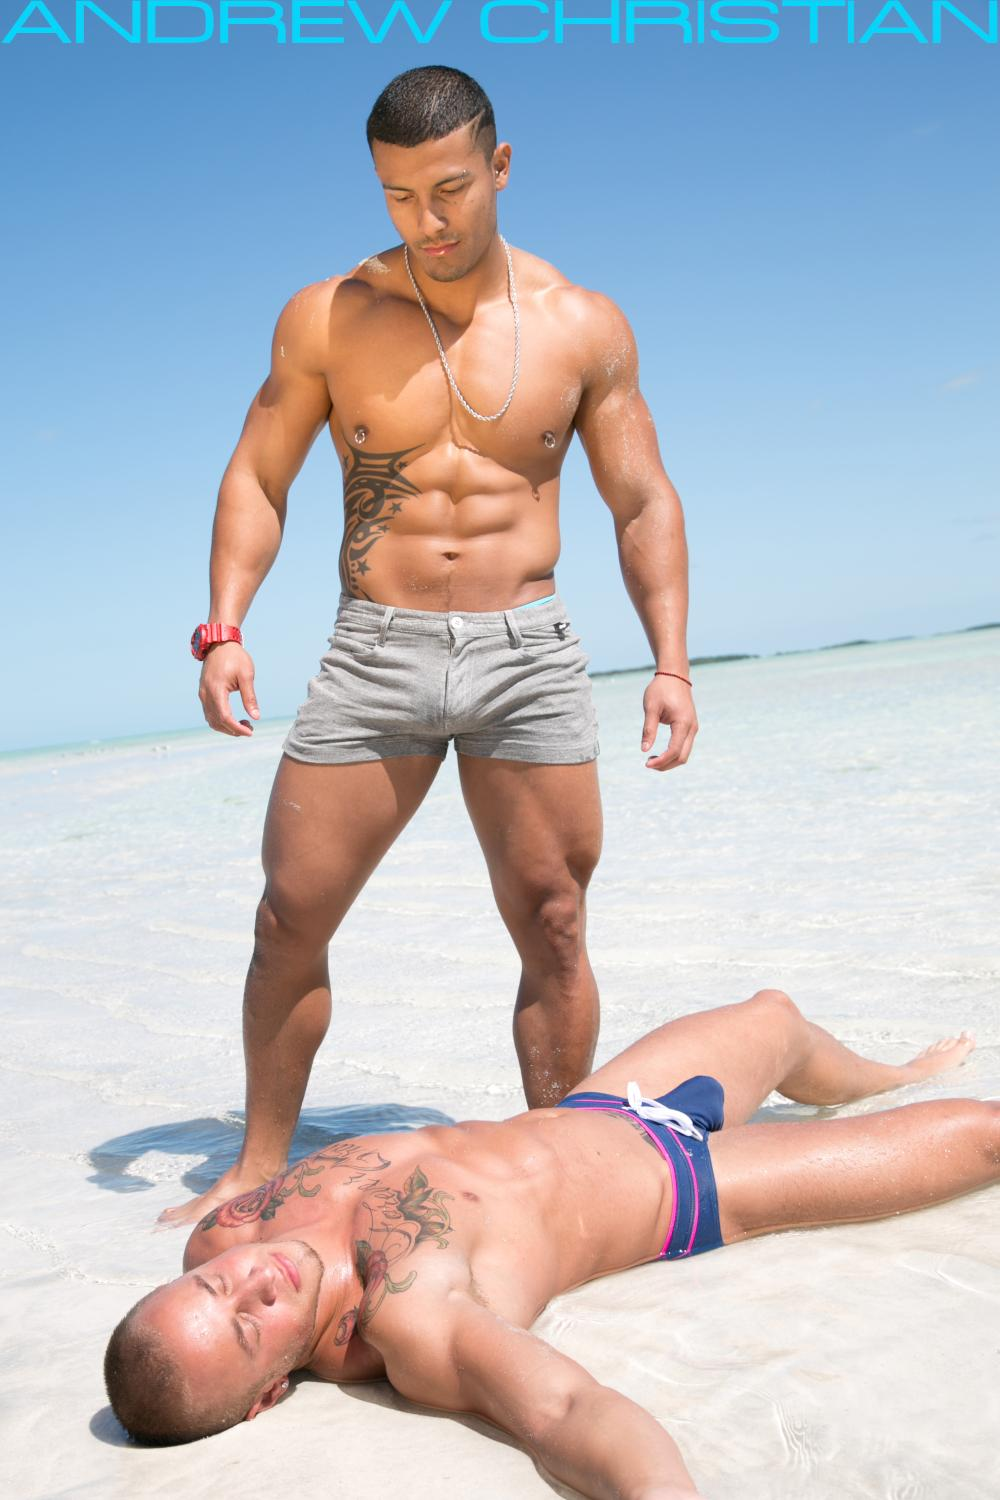 """Andrew Christian releases its first 2 part video""""Overboard"""""""